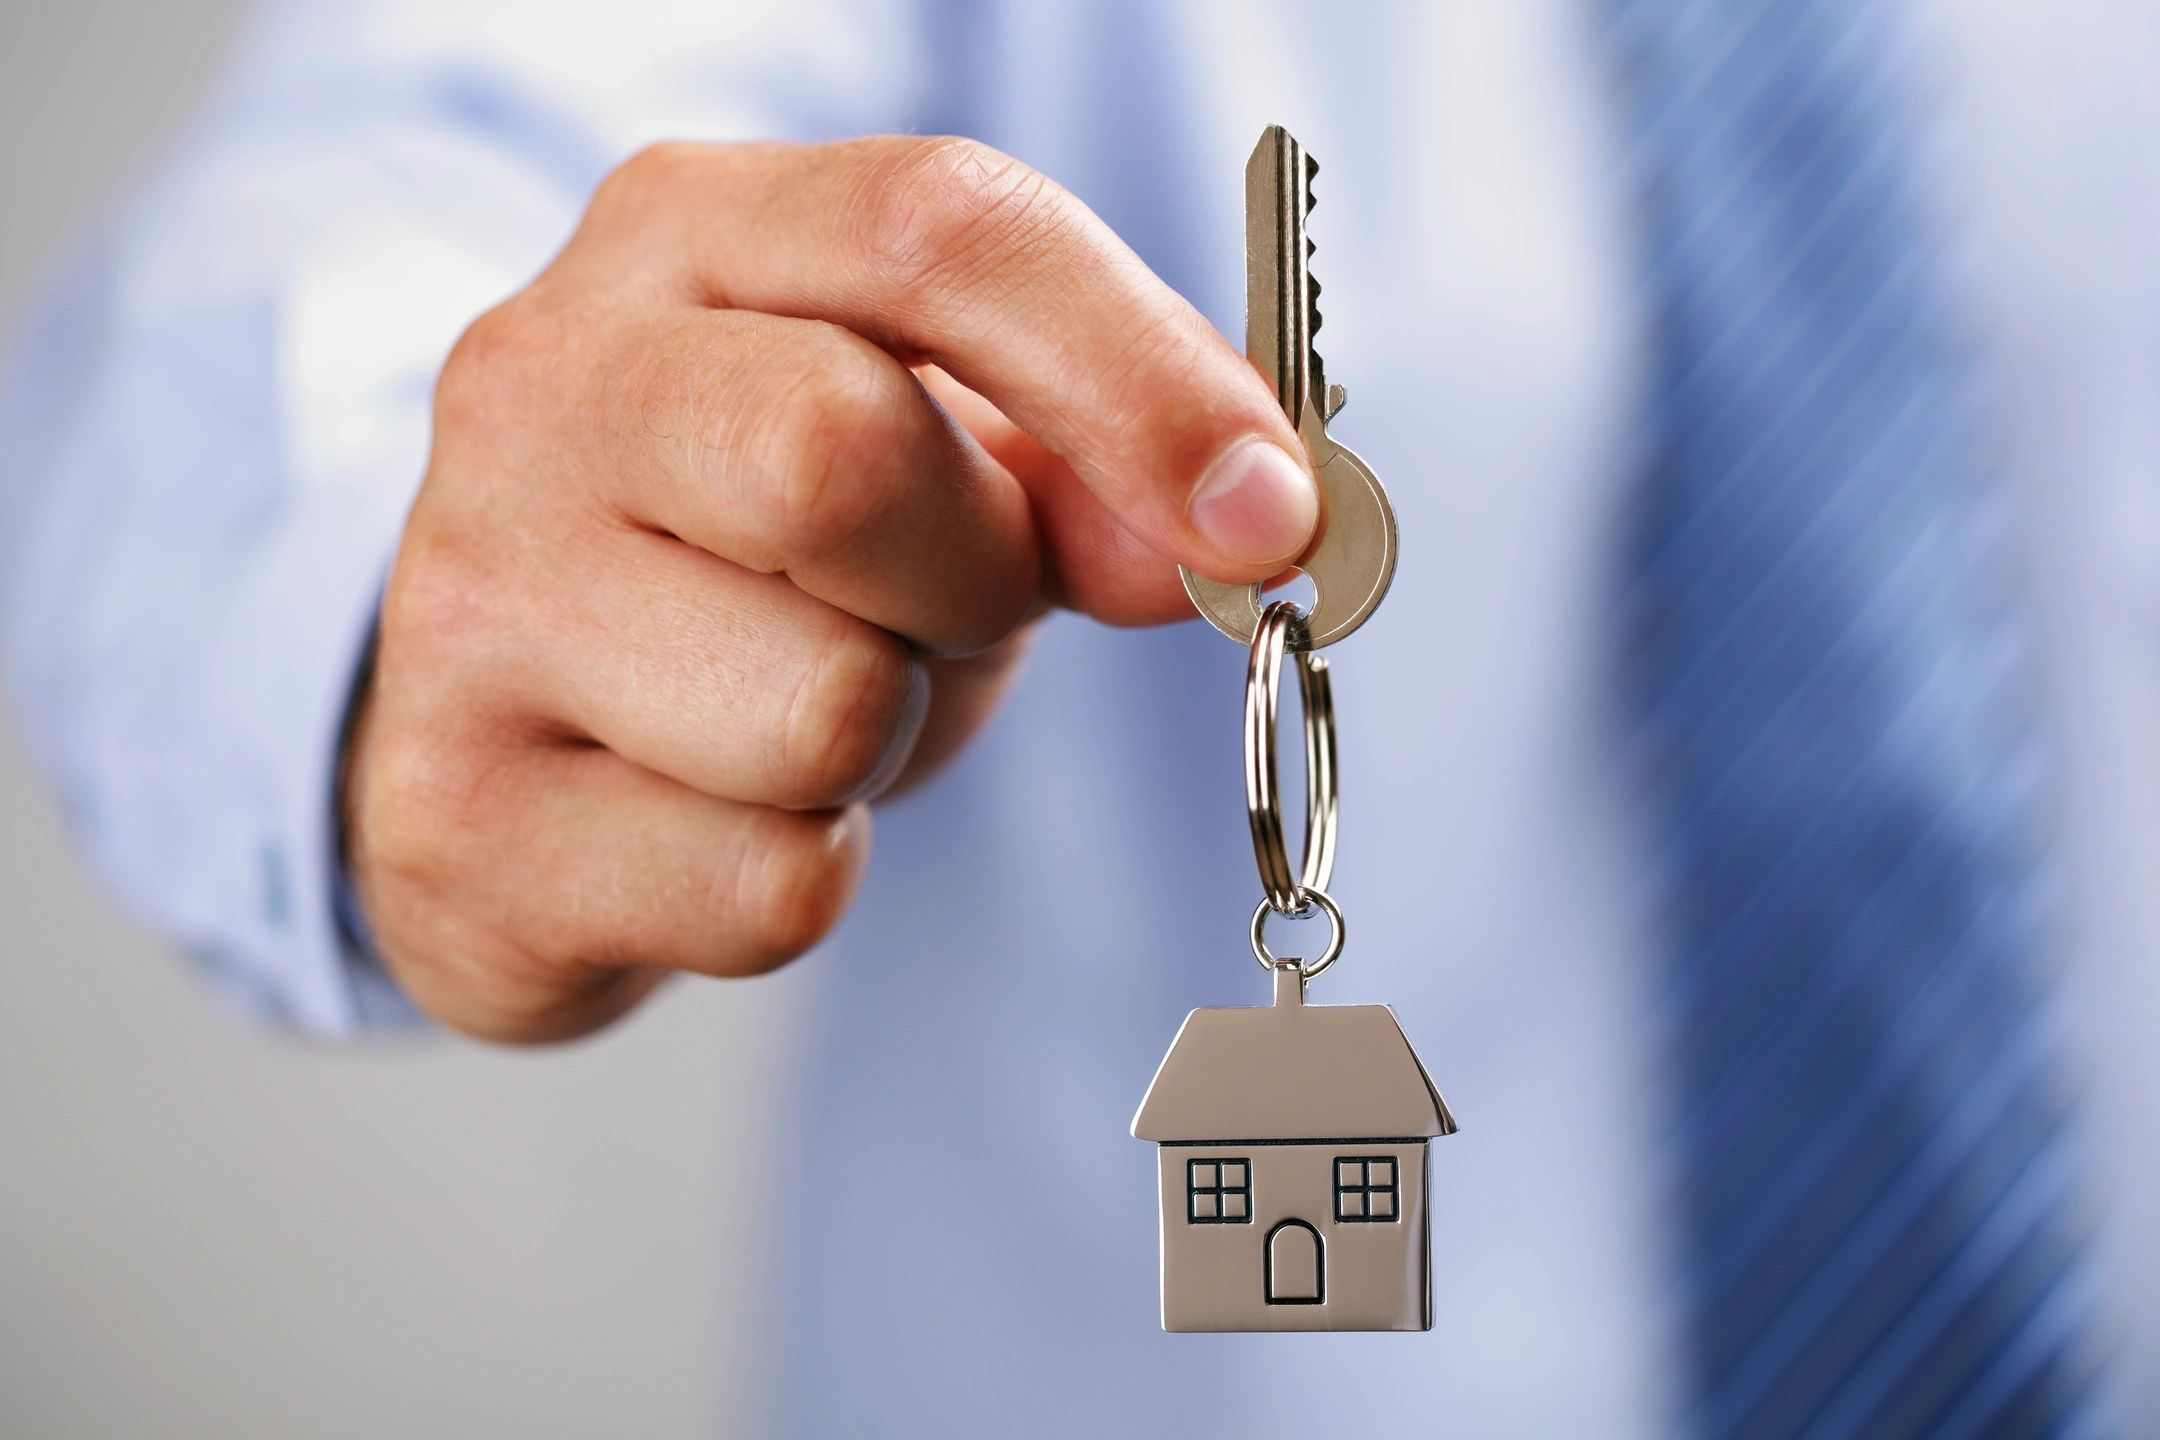 Handing over key to new house